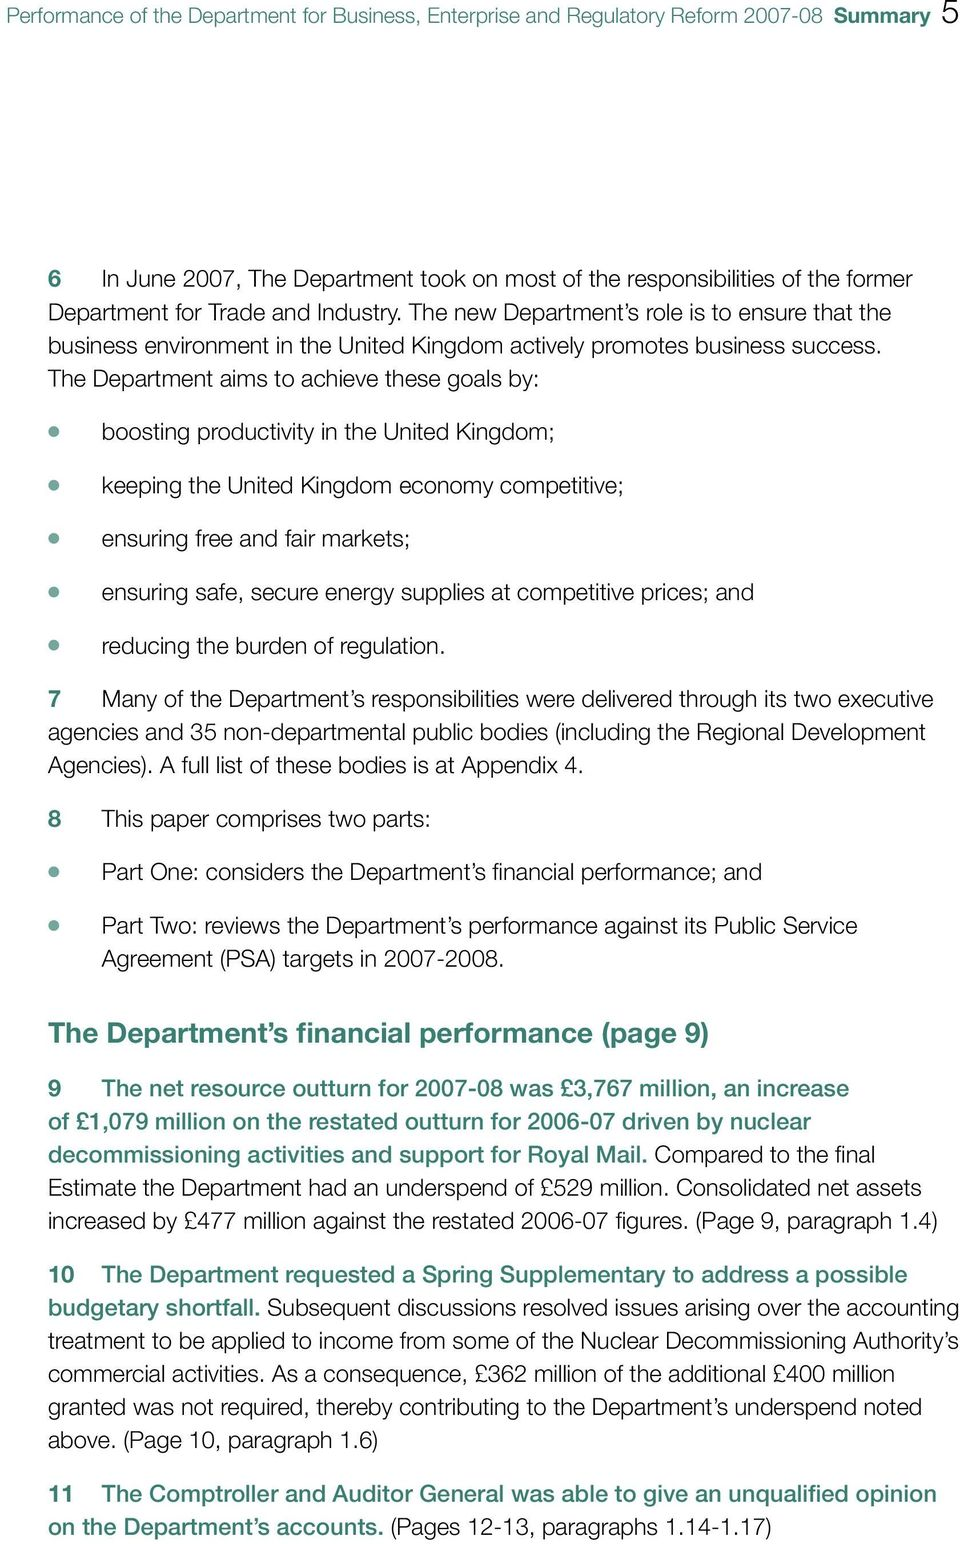 The Department aims to achieve these goas by: boosting productivity in the United Kingdom; keeping the United Kingdom economy competitive; ensuring free and fair markets; ensuring safe, secure energy